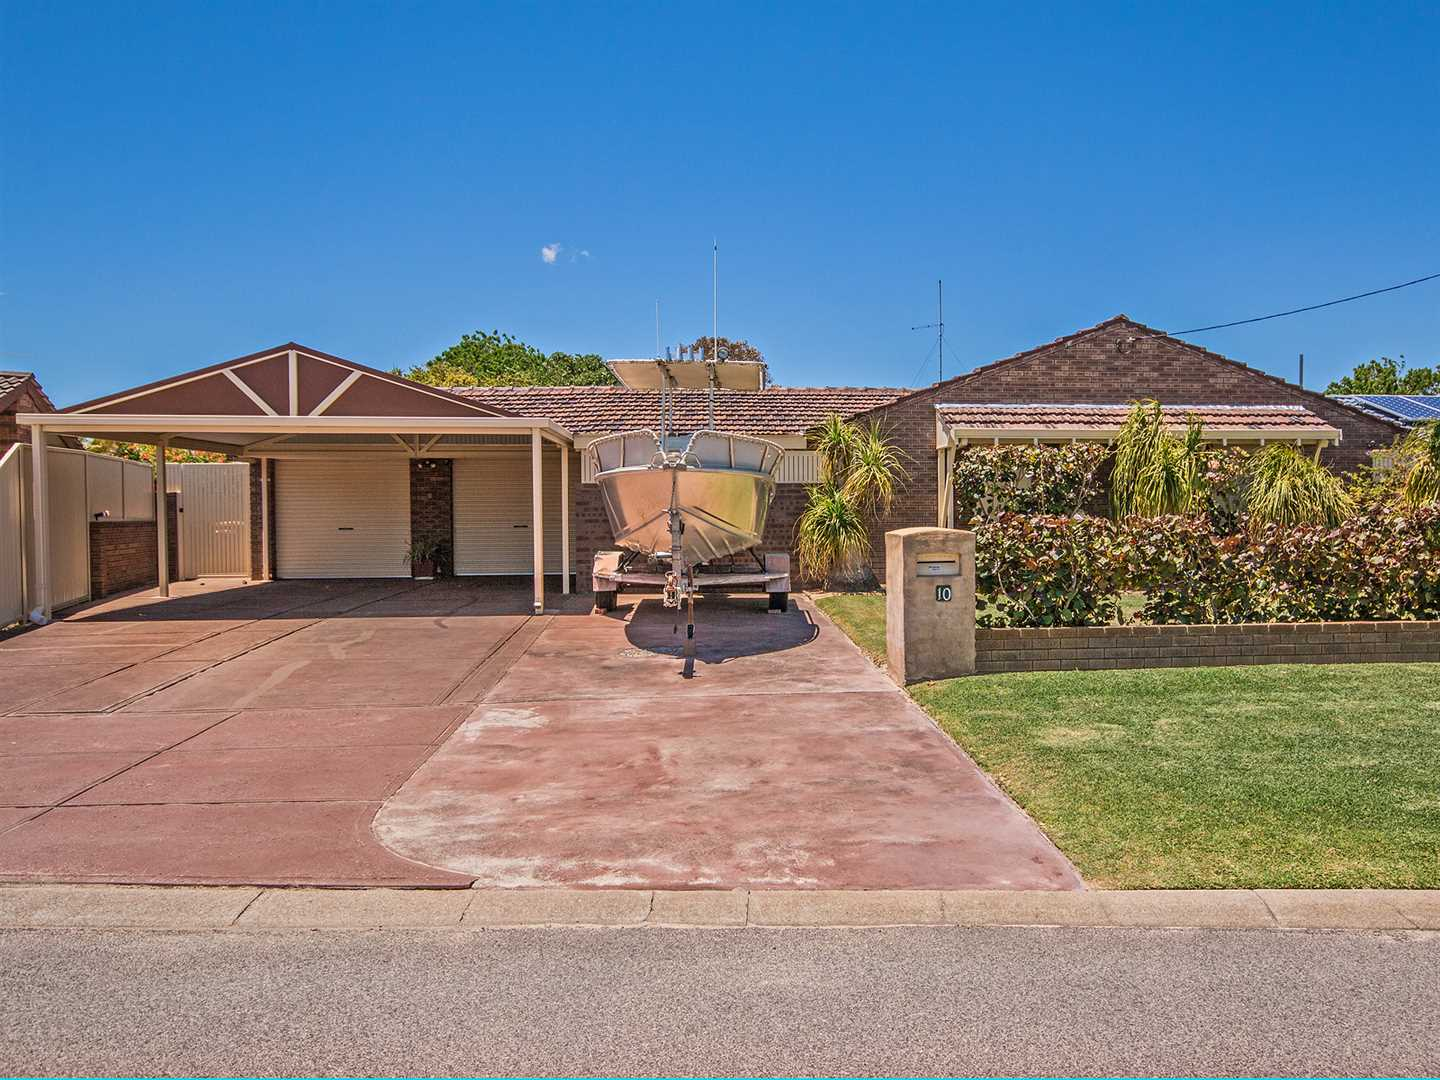 Motivated Seller!!! - Come And See!!!